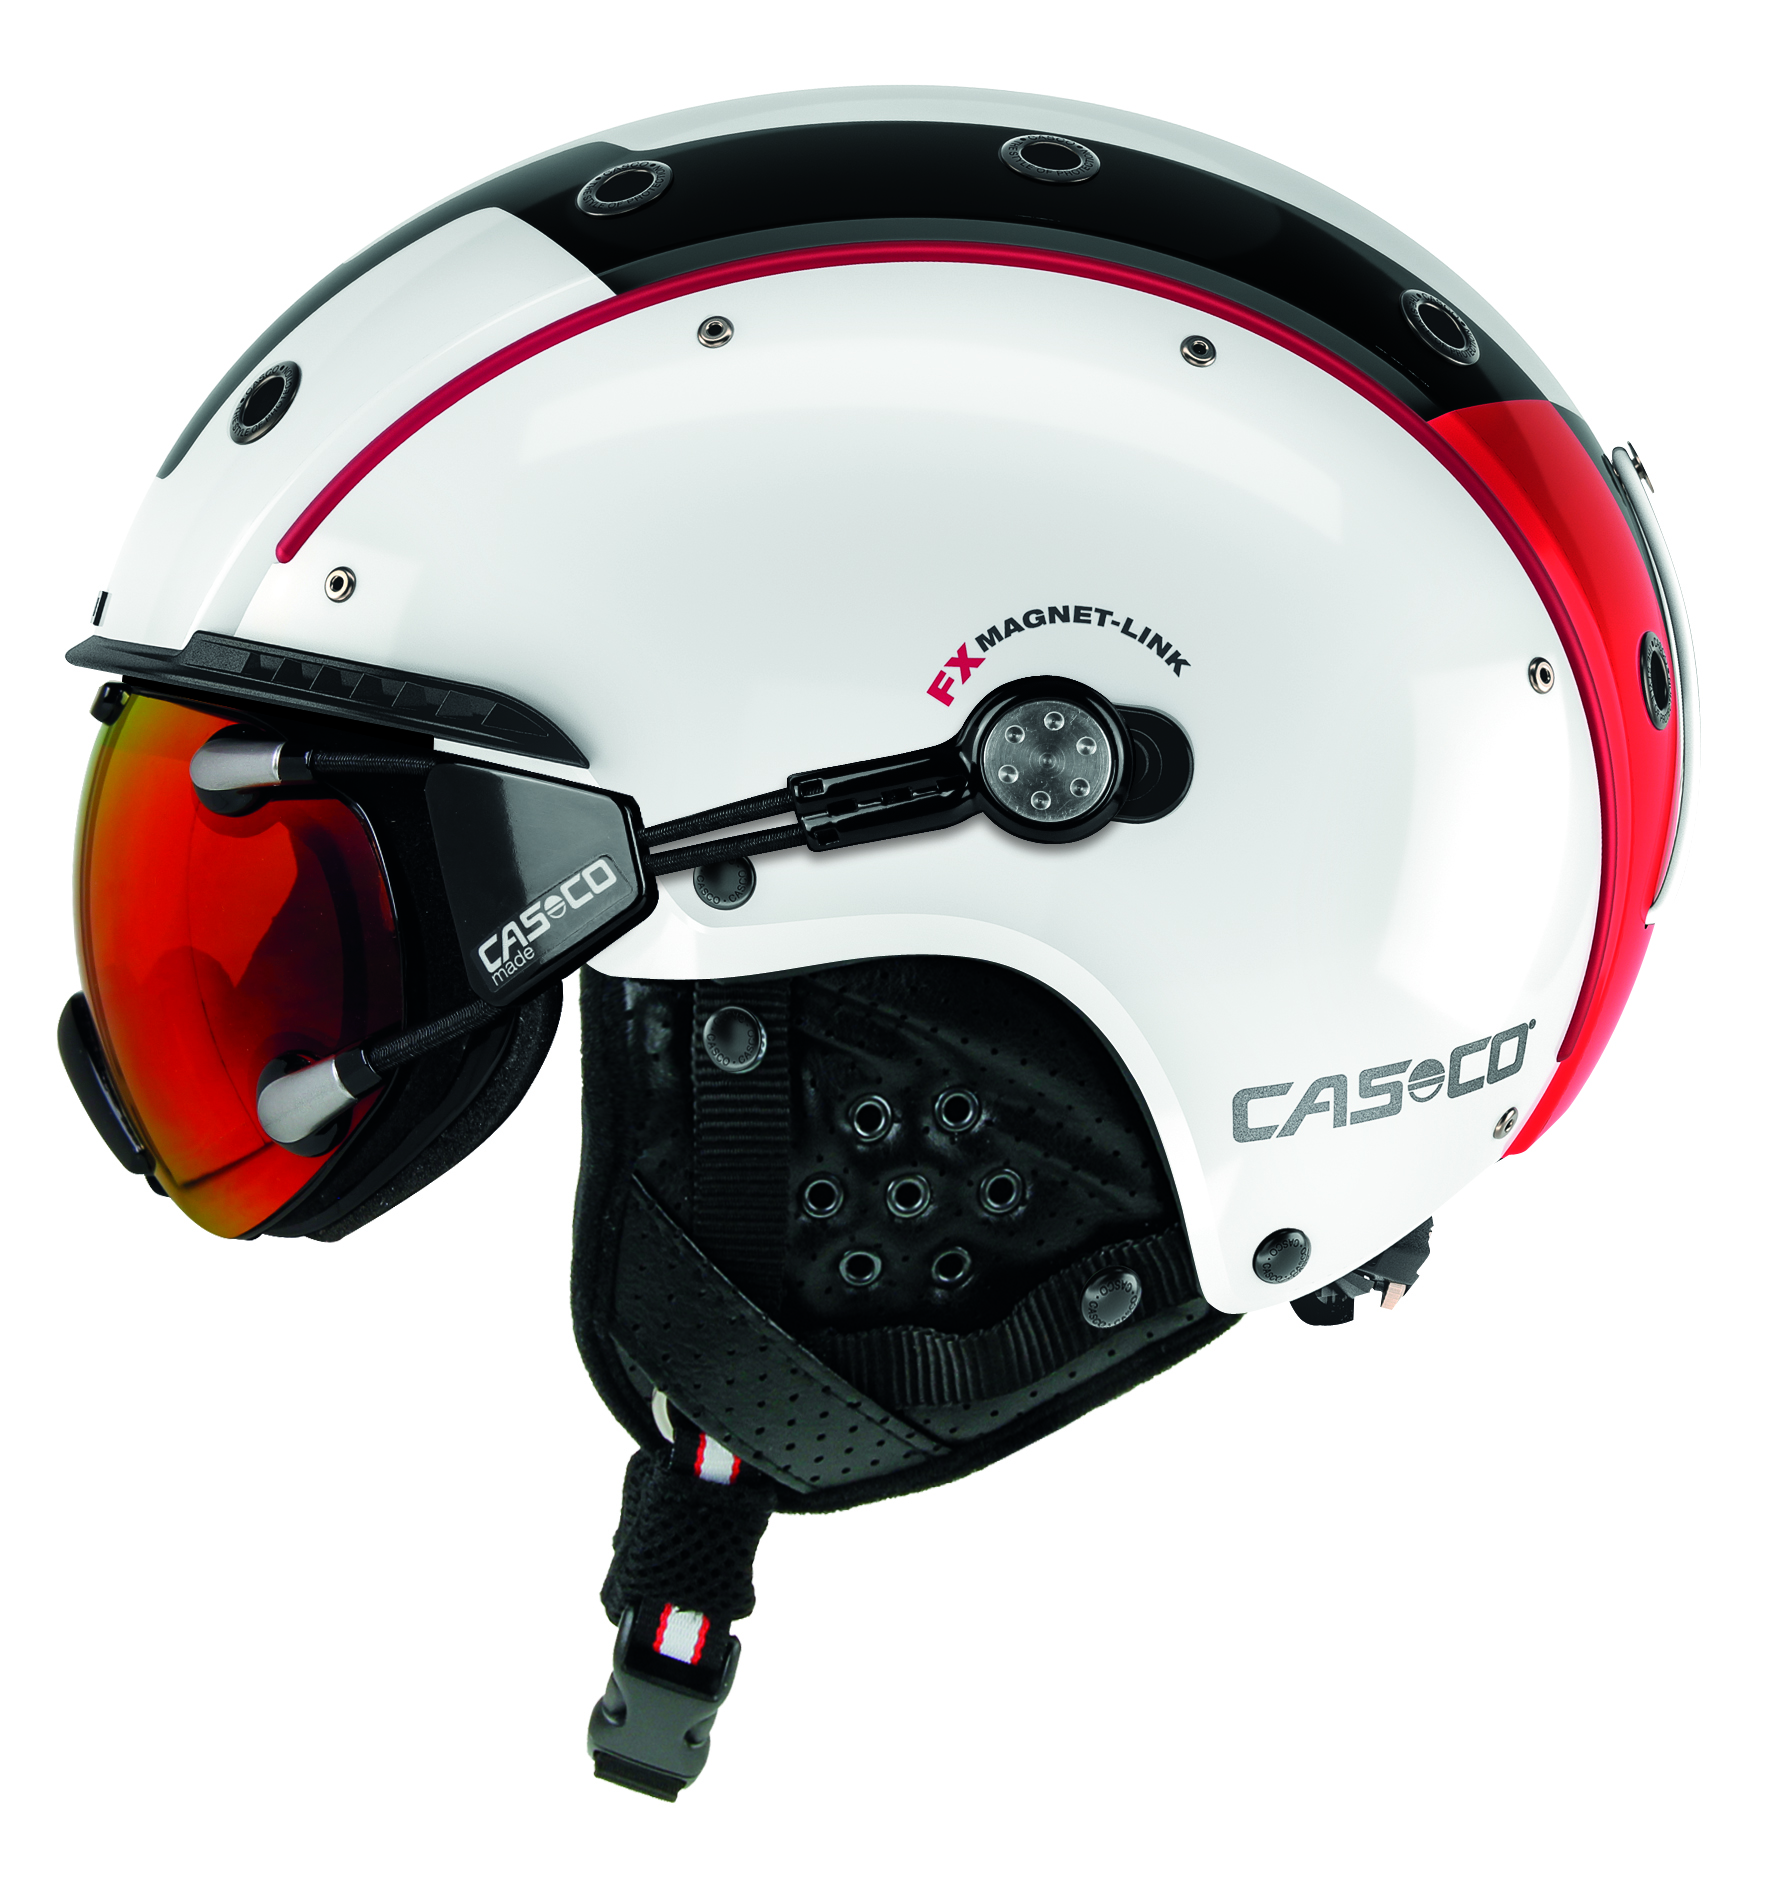 Casco SP-3 Comp Skihelm ohne Brille